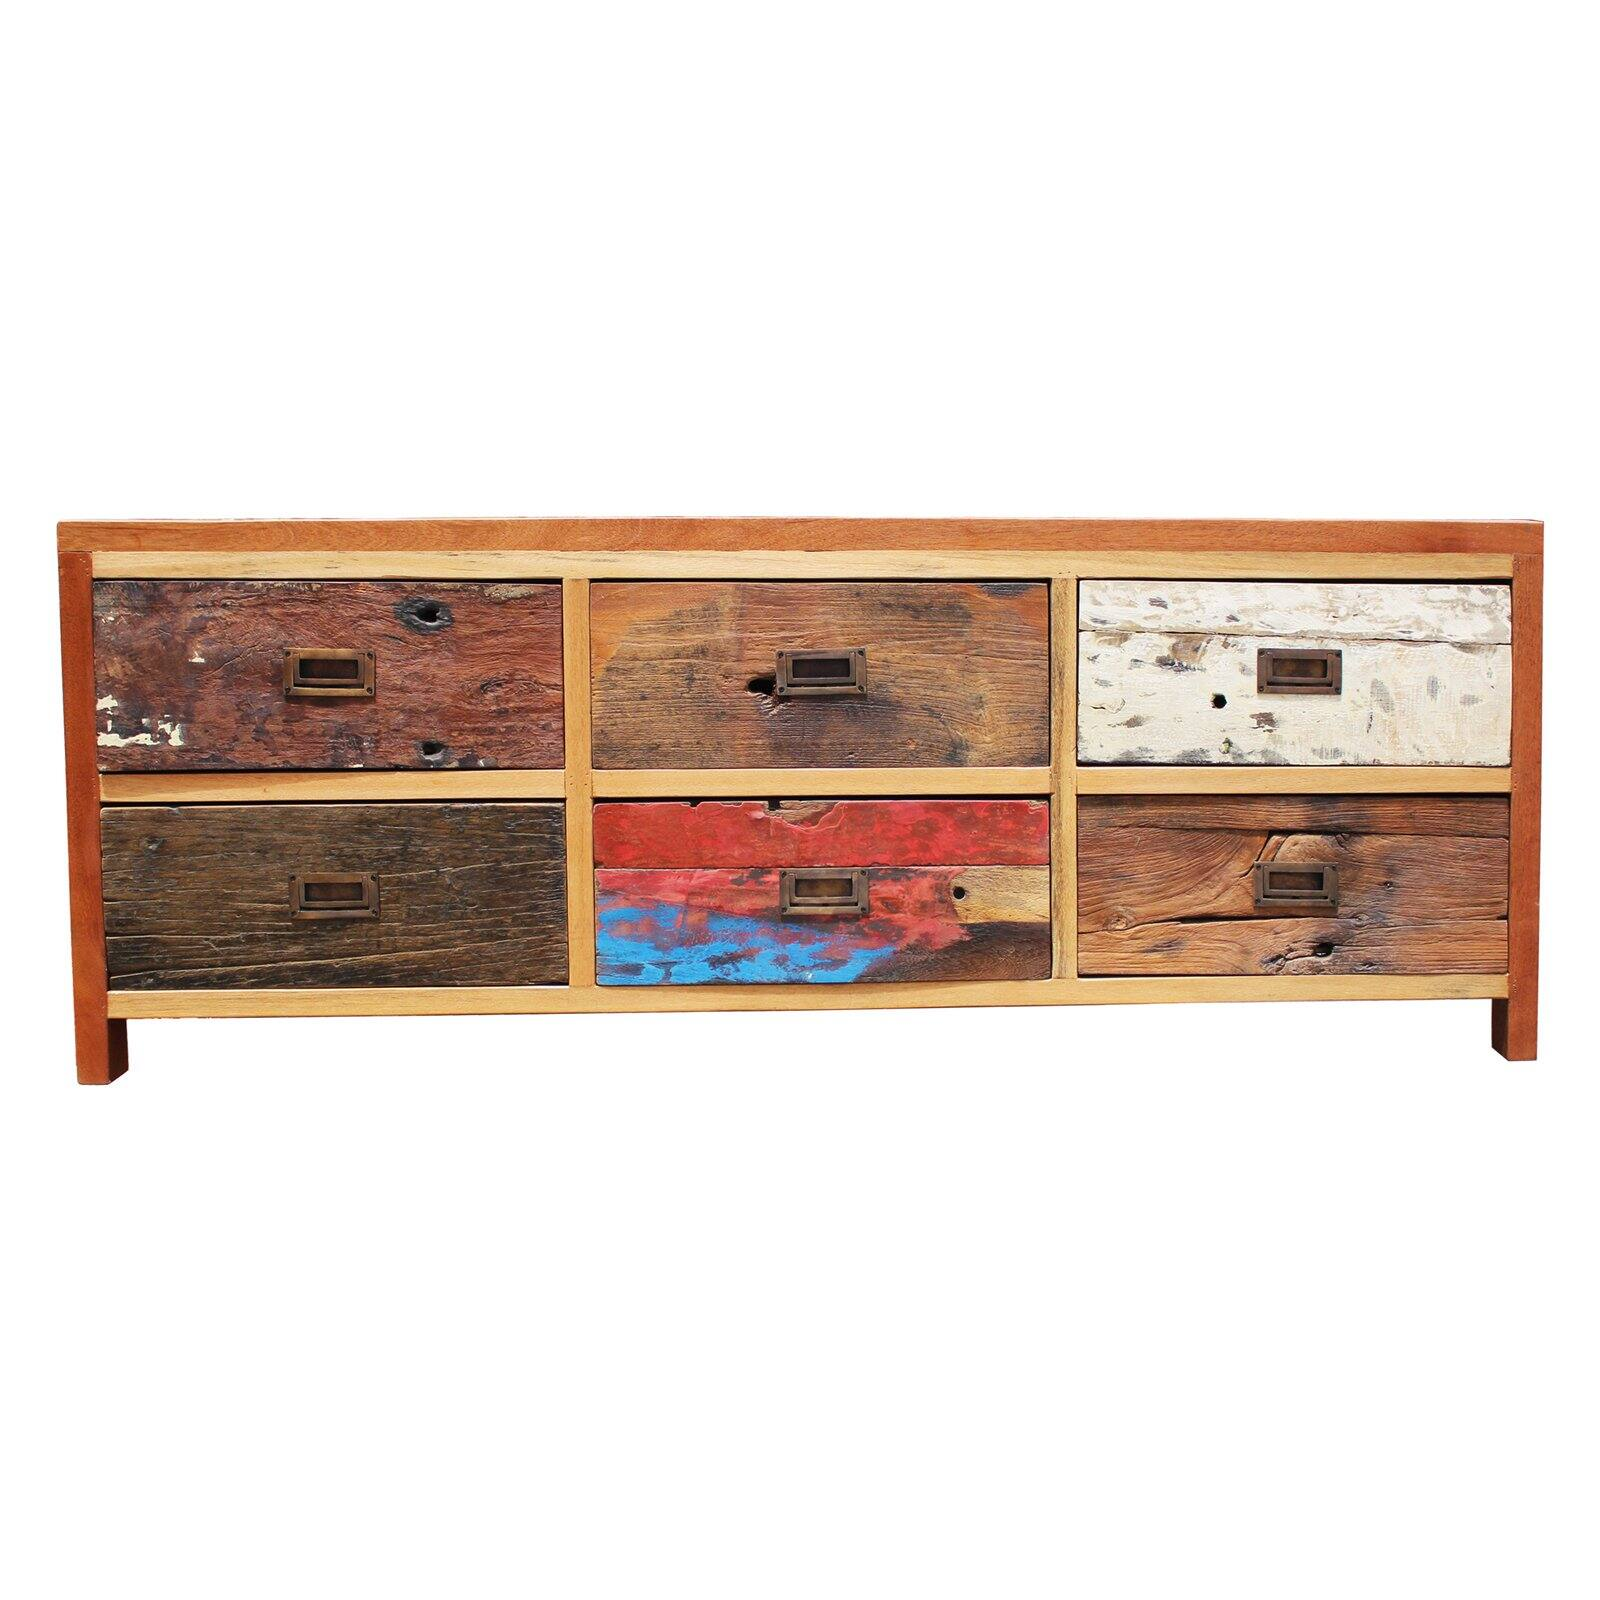 Picture of: Chic Teak Indoor Outdoor Dresser Buffet With 6 Drawers Made From Recycled Teak Wood Boats Walmart Com Walmart Com